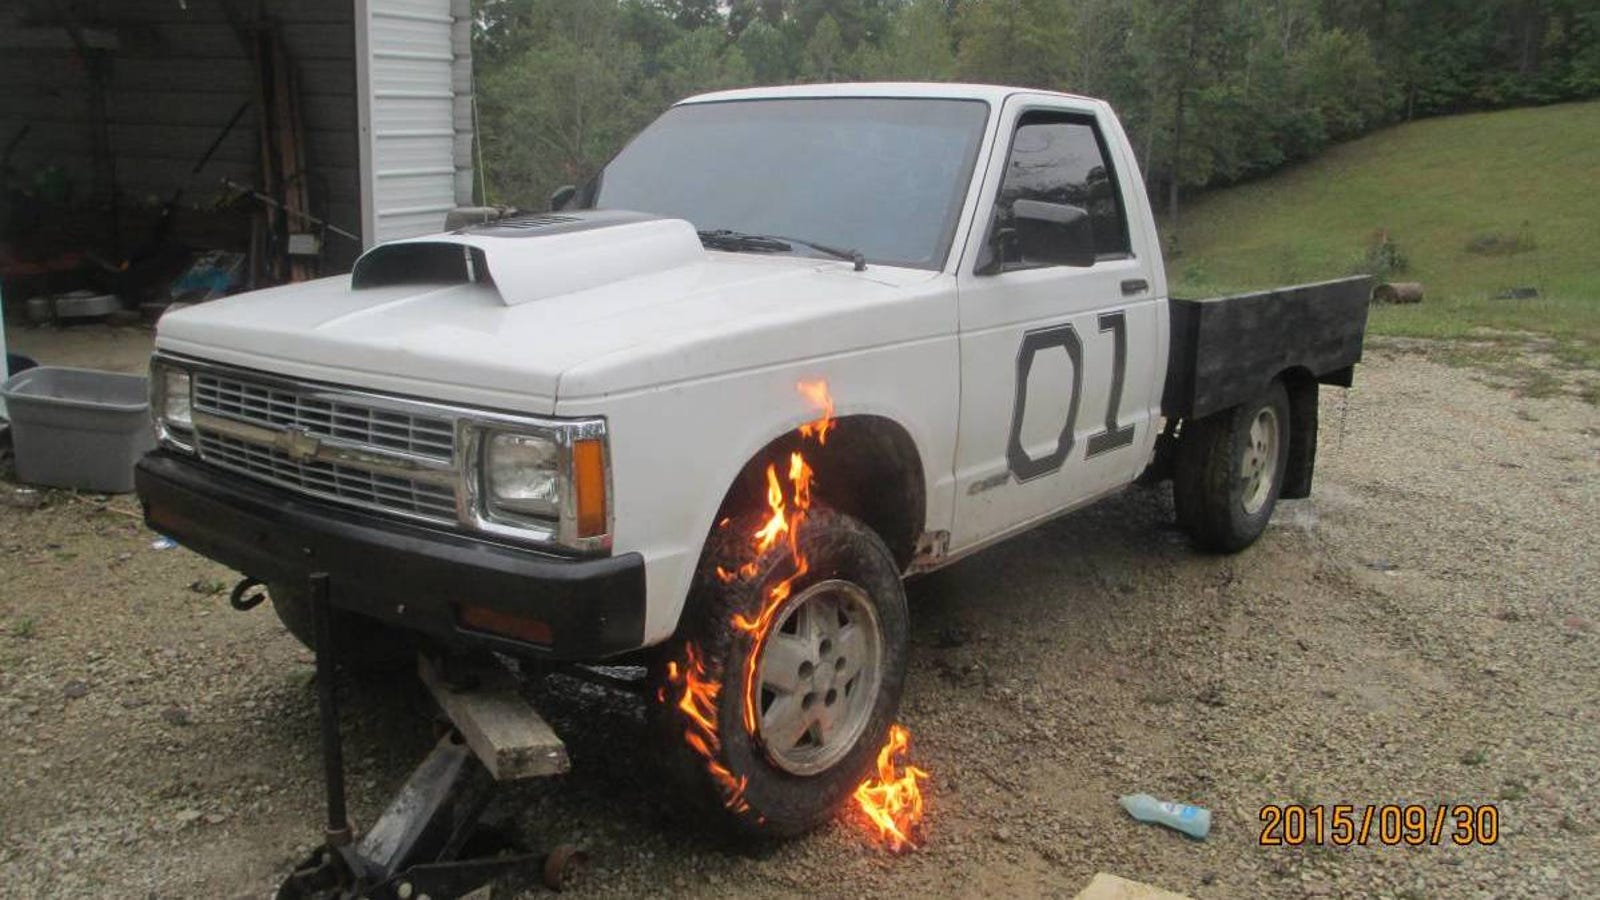 Craigslist Lexington Cars: Craigslist Seller Knows What They Have, A Truck Not On